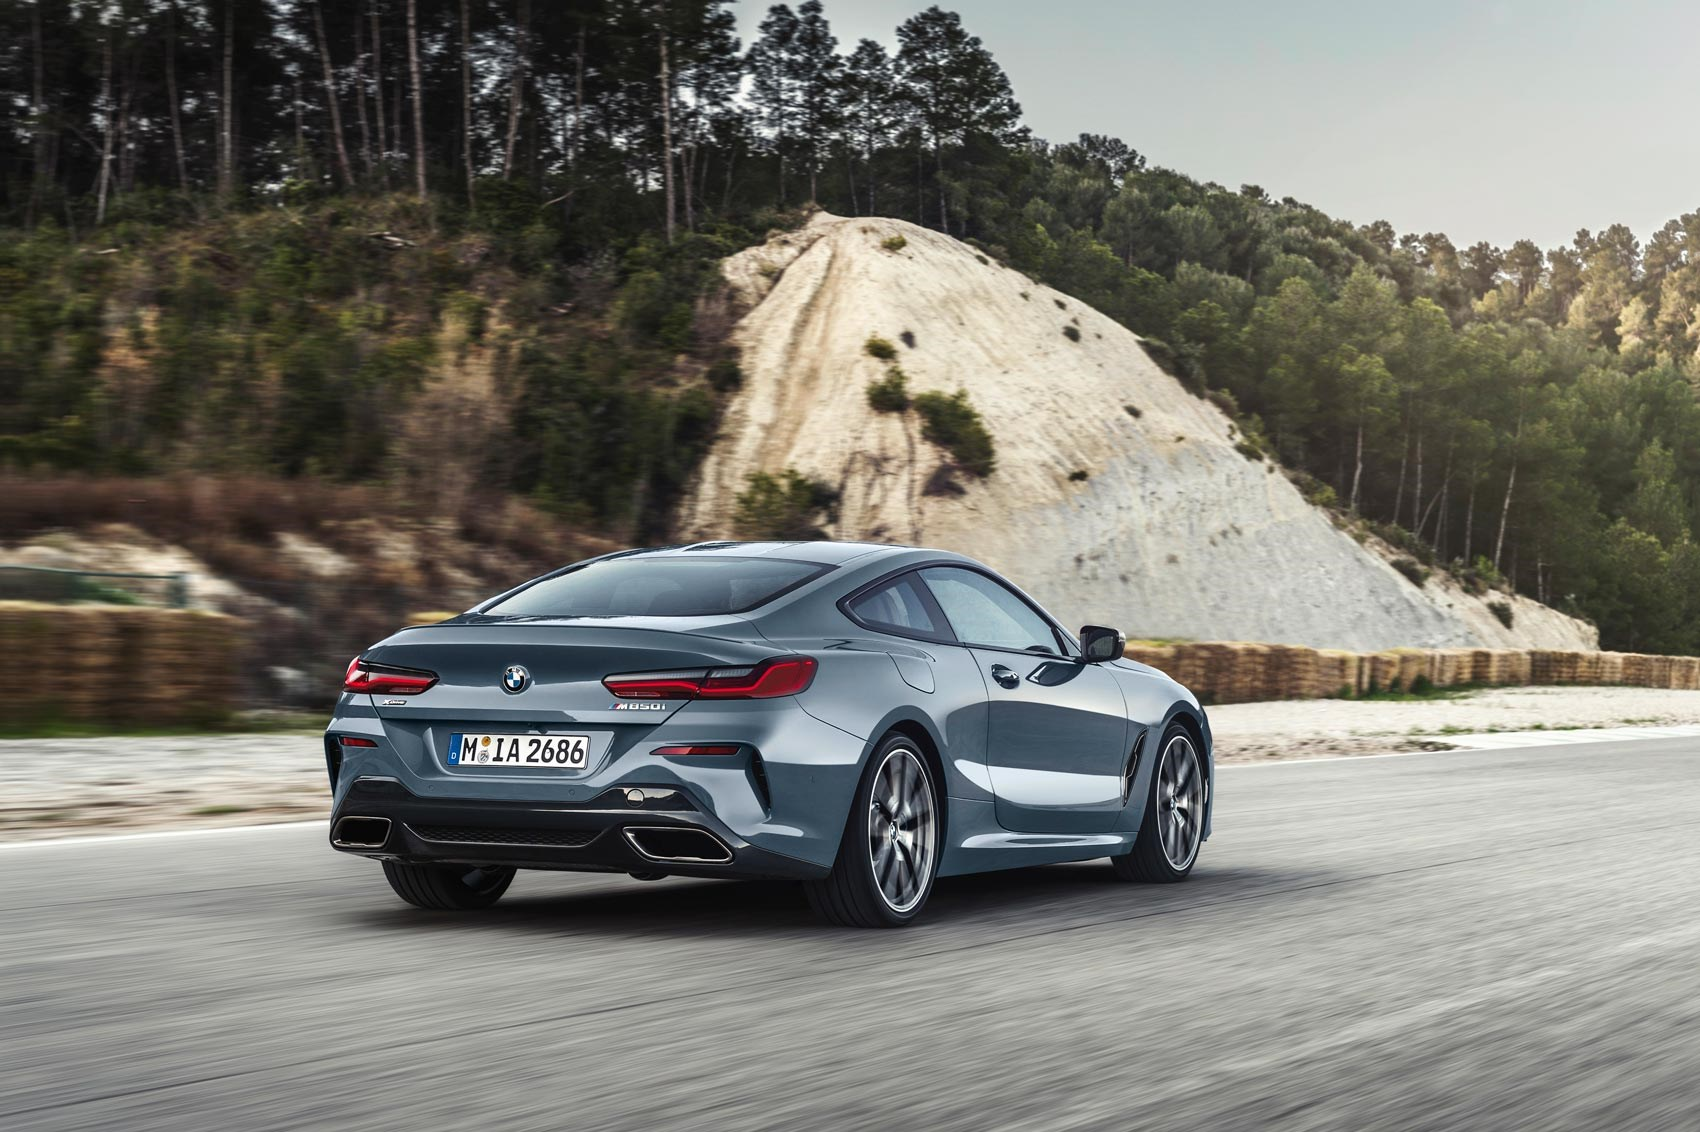 New BMW 8-series: Gran Coupe spied testing | CAR Magazine